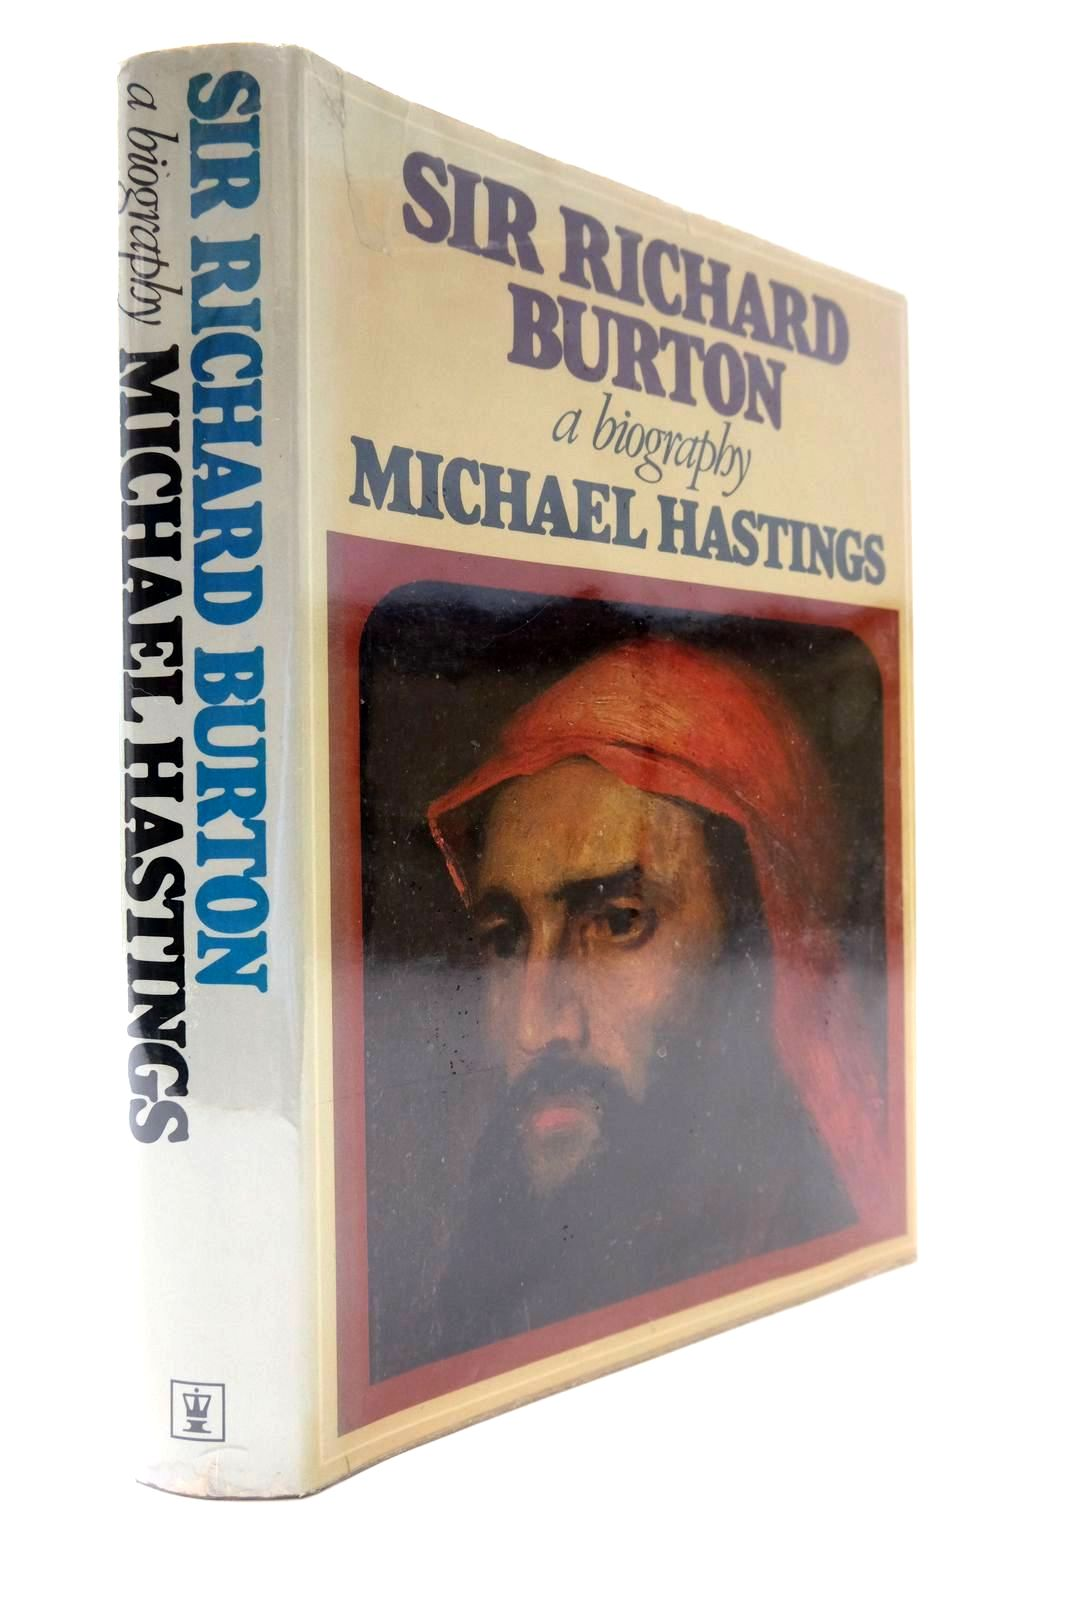 Photo of SIR RICHARD BURTON: A BIOGRAPHY written by Hastings, Michael published by Hodder & Stoughton (STOCK CODE: 2133996)  for sale by Stella & Rose's Books